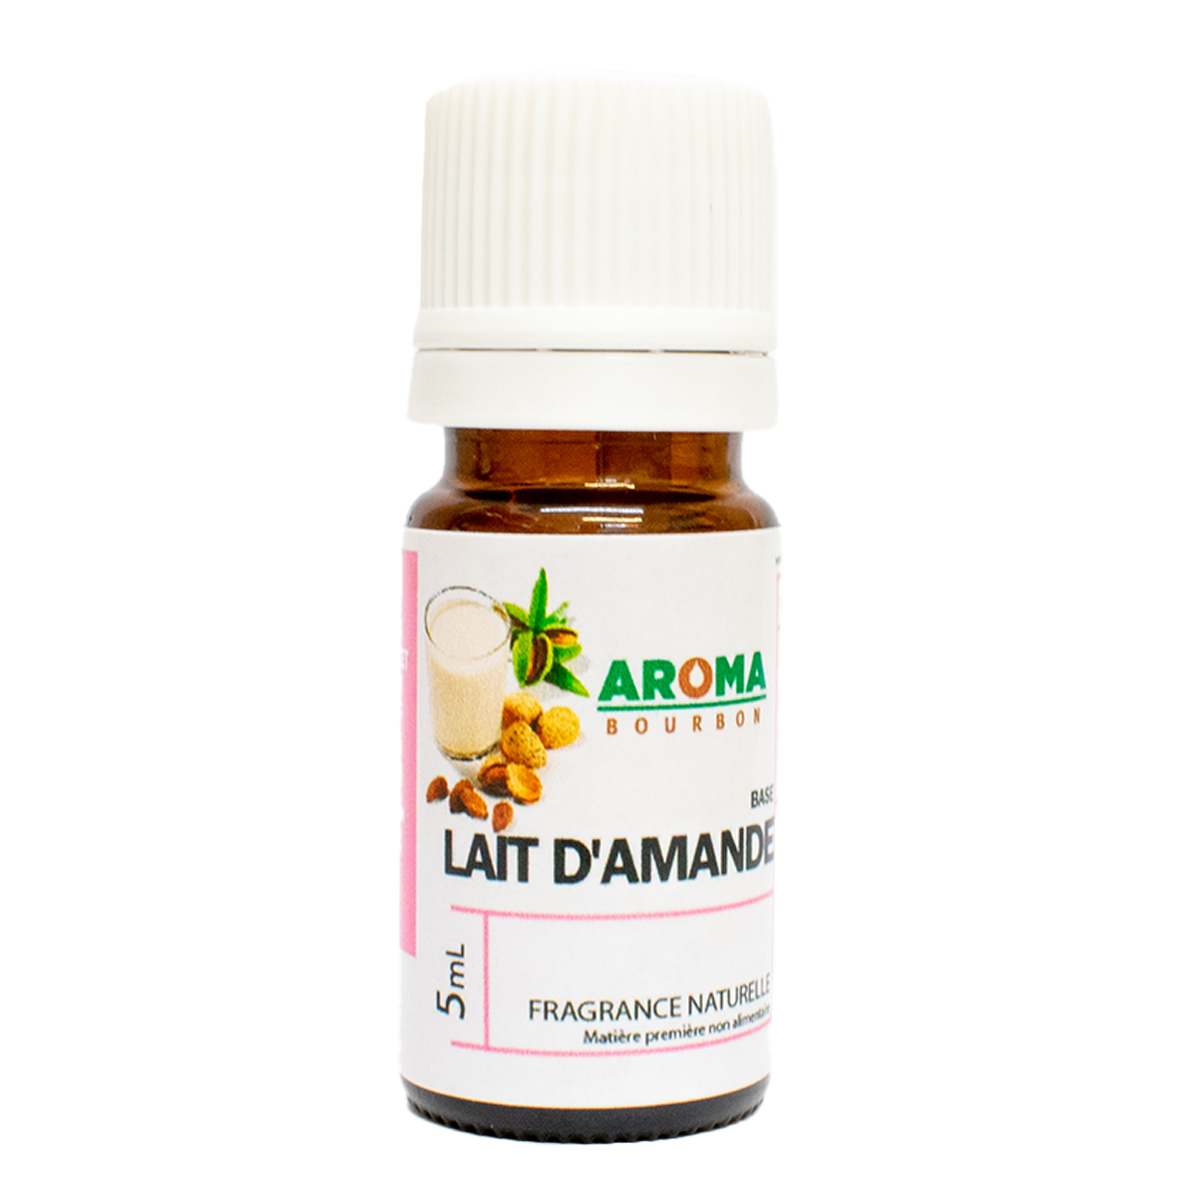 LAIT D'AMANDE - Fragrance naturelle